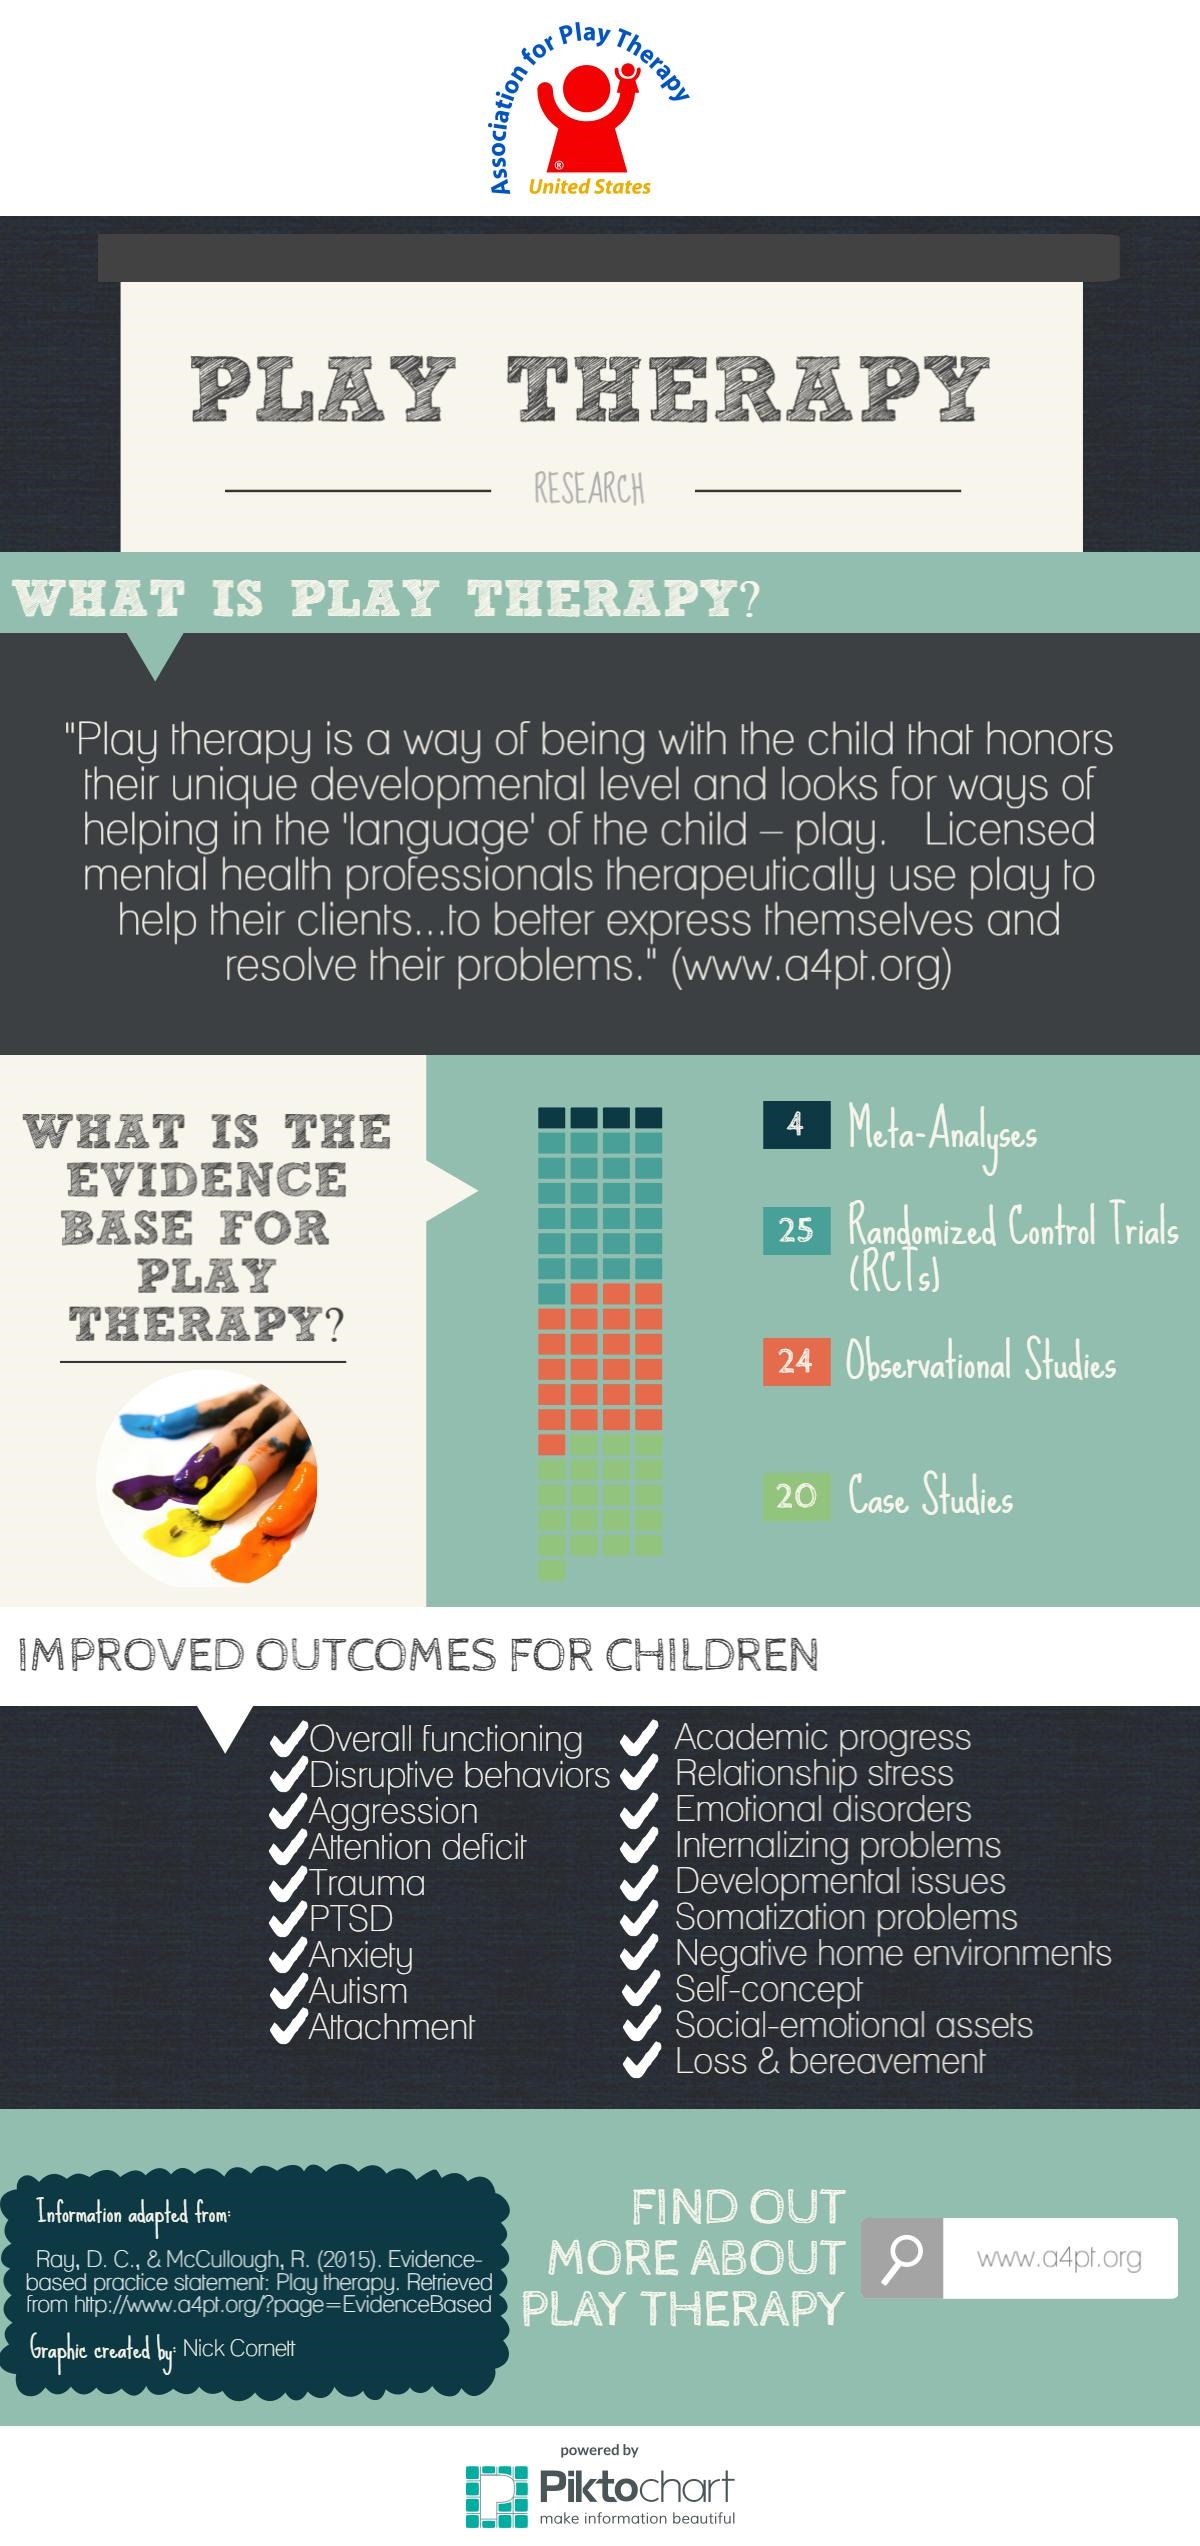 Research & Practice - Association for Play Therapy